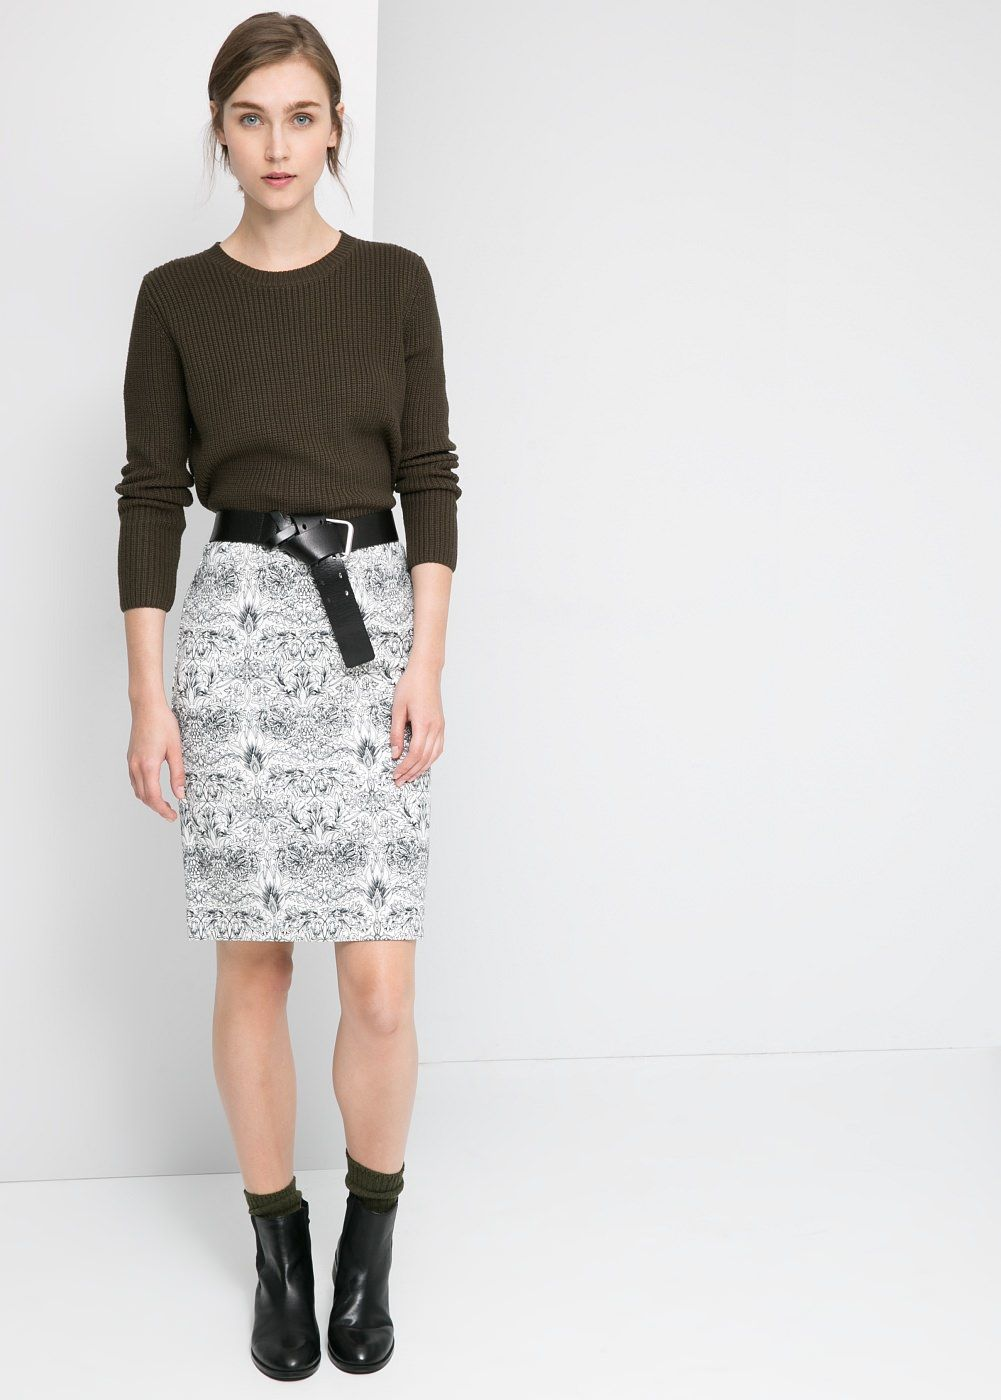 db8c5e24a7d223 Neoprene-effect printed skirt Cheap Midi Skirts, Printed Skirts, Printed  Pencil Skirt,